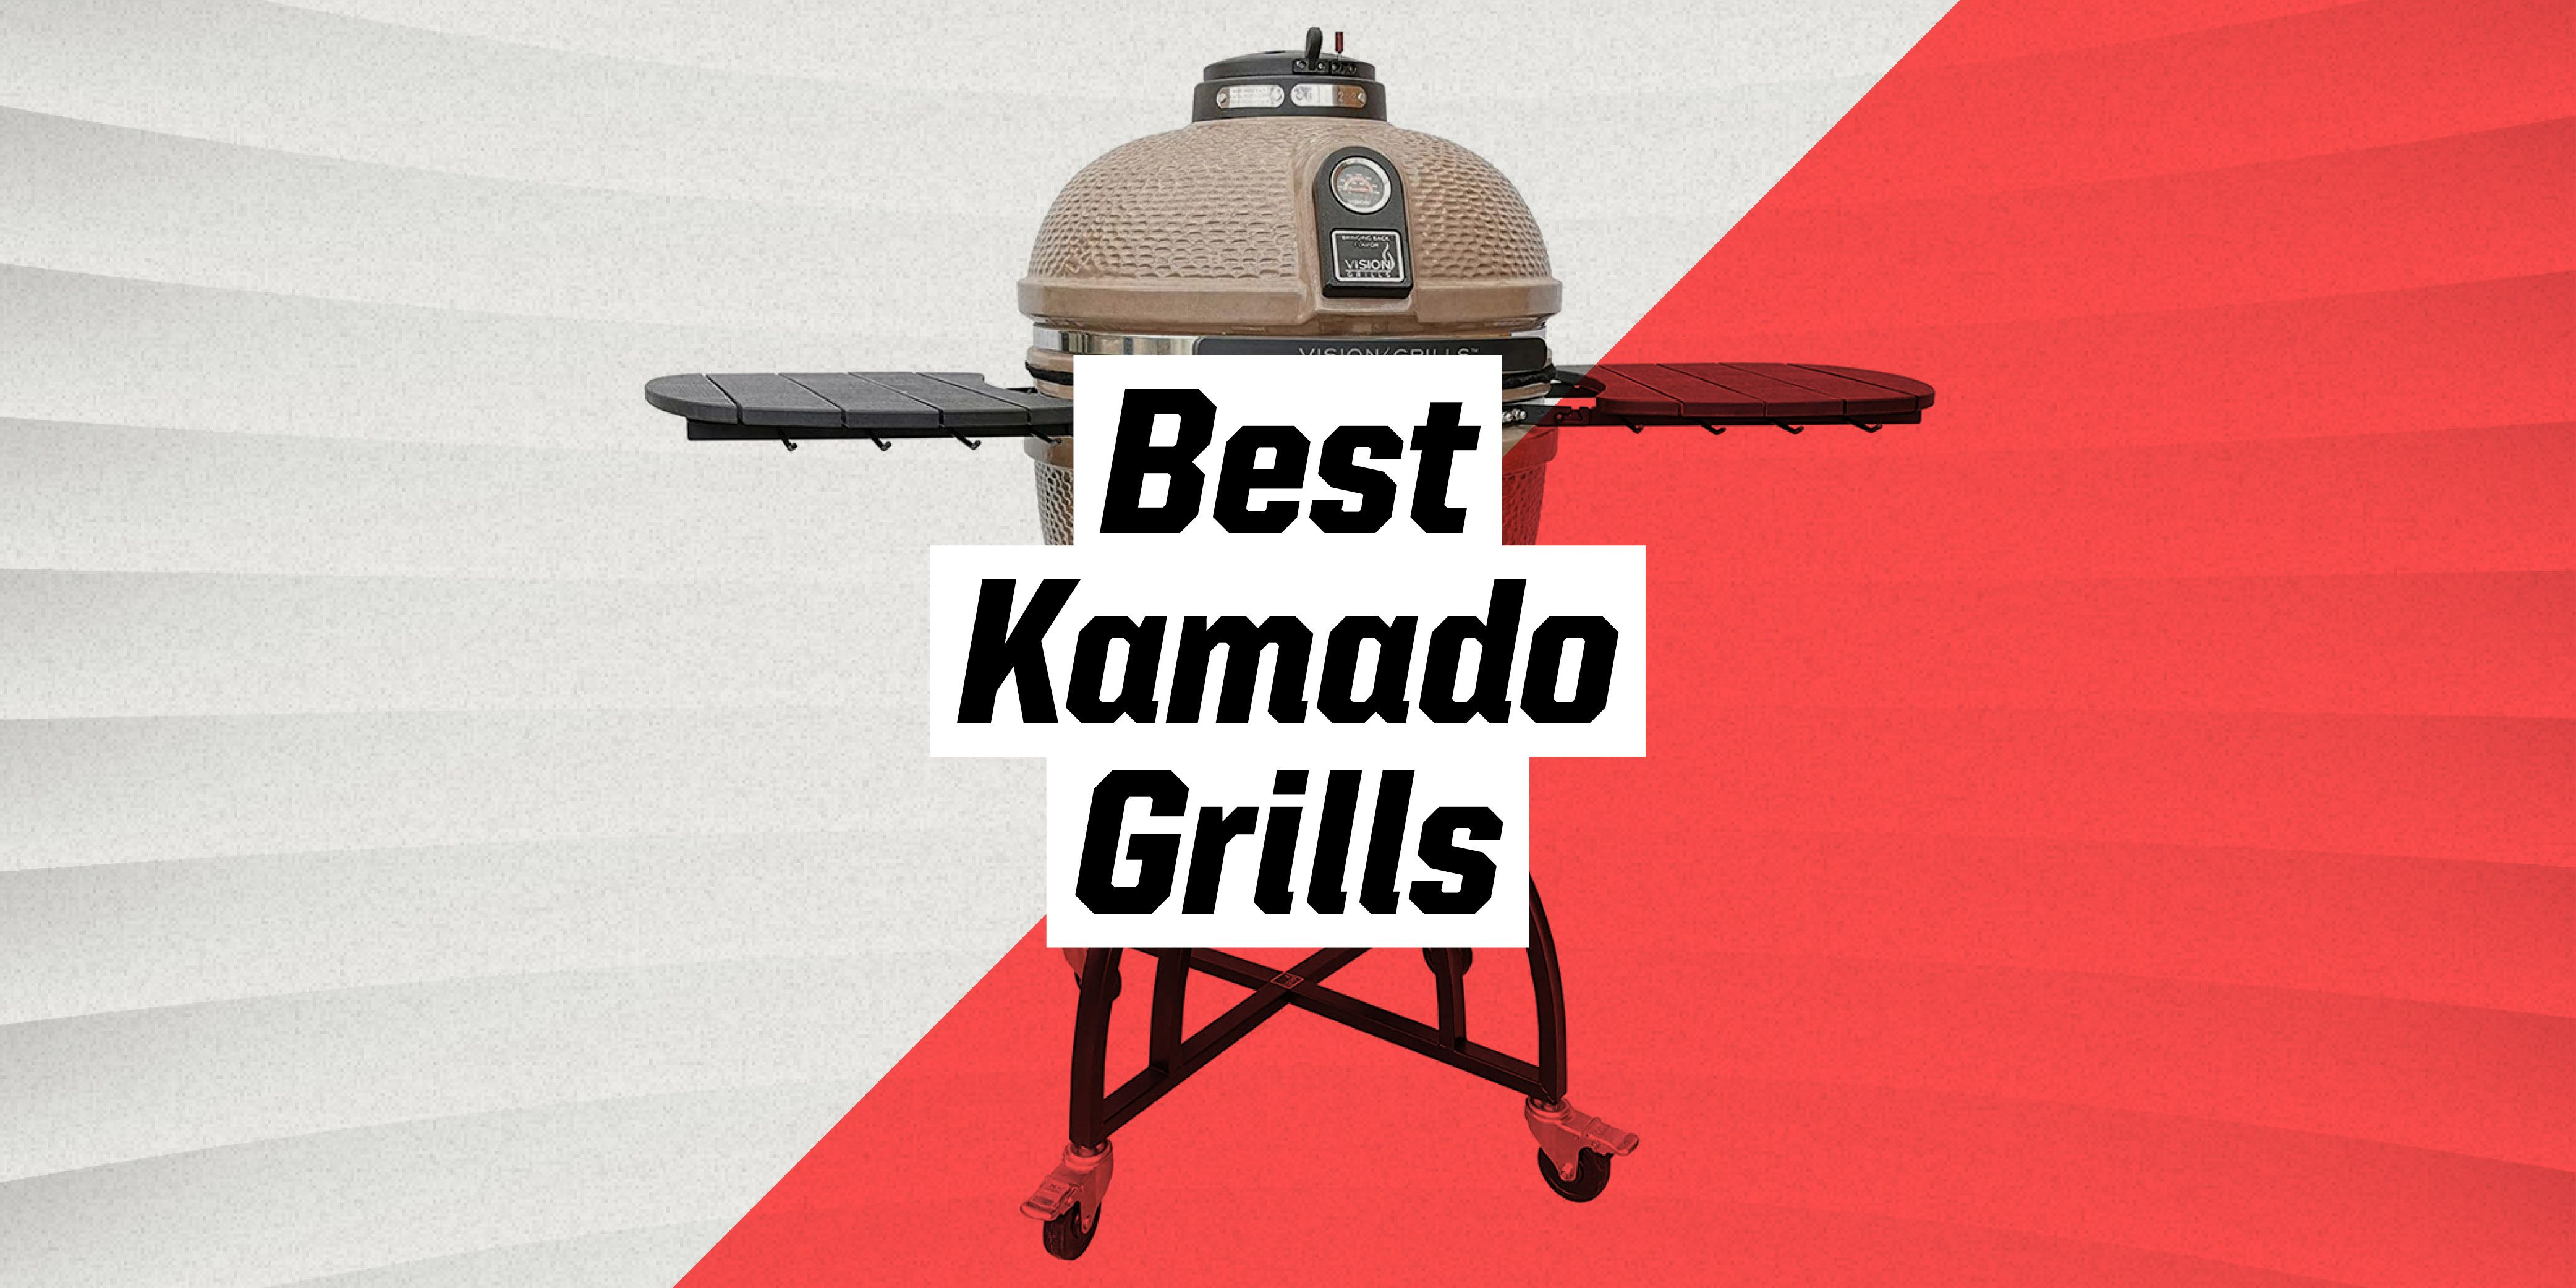 The 10 Best Kamado Grills for the Ultimate Outdoor Cooking Experience